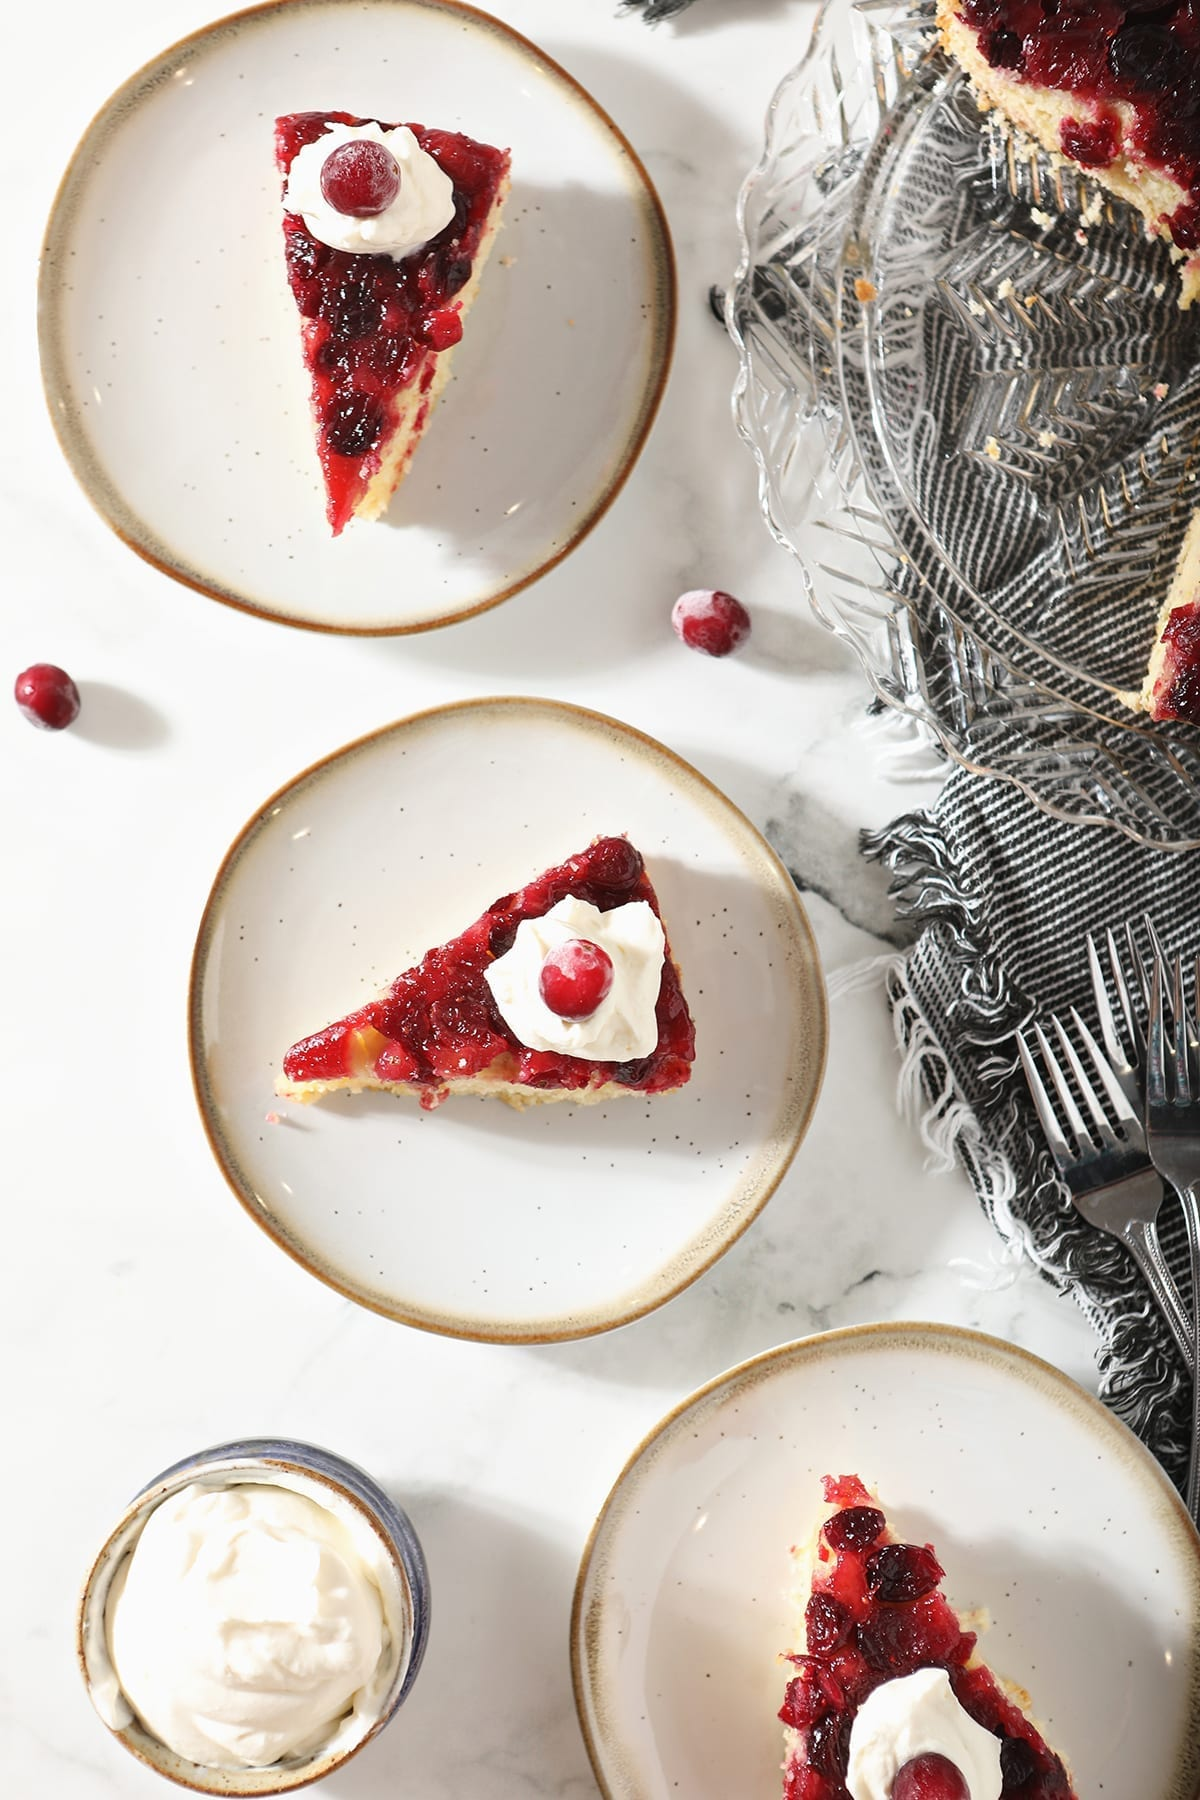 Overhead of three plates holding slices of Cranberry Cake